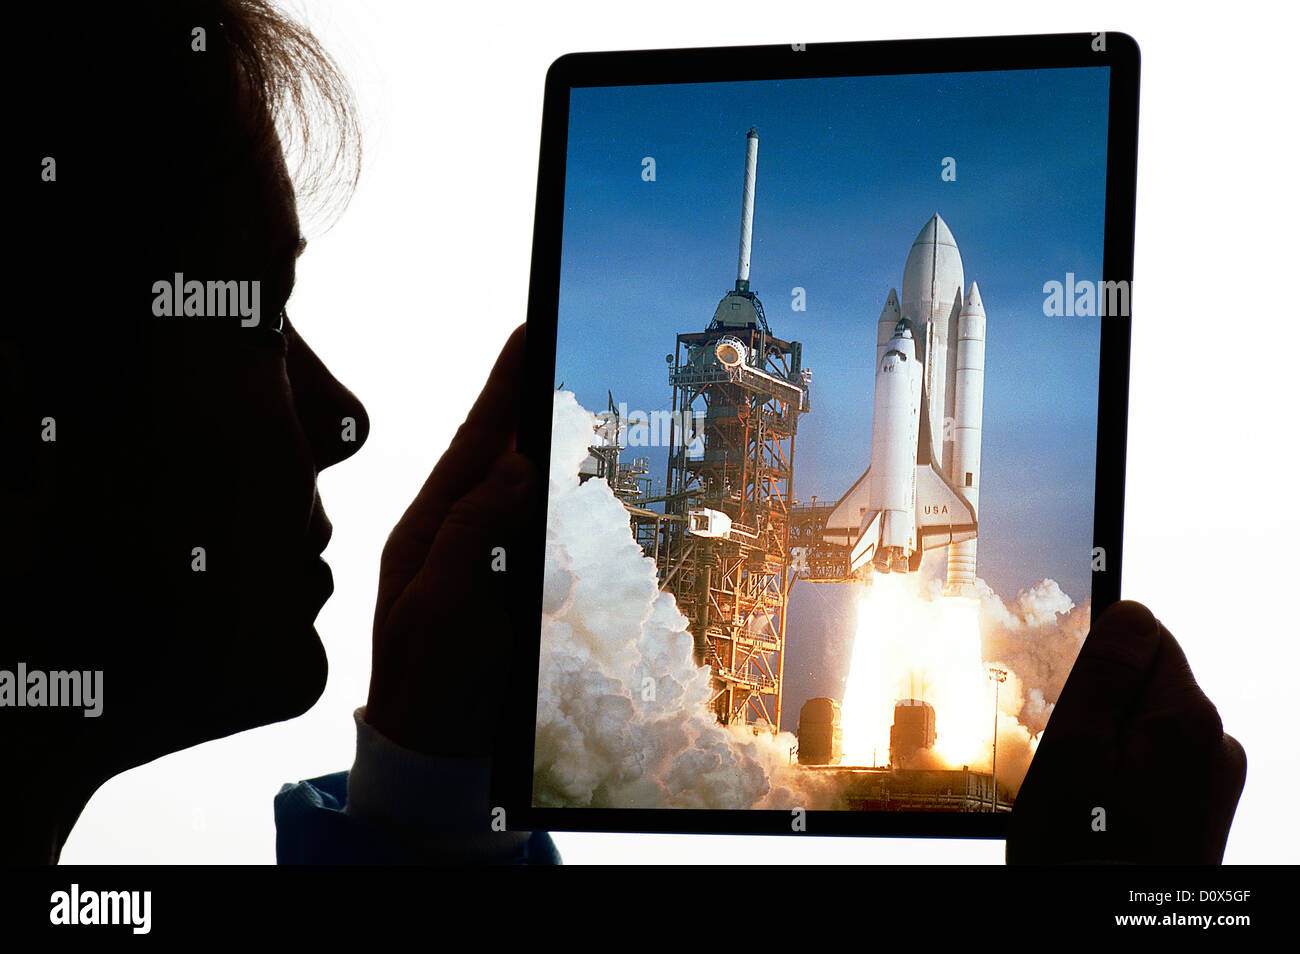 woman engineer with NASA shuttle launch photo on digital tablet - Stock Image